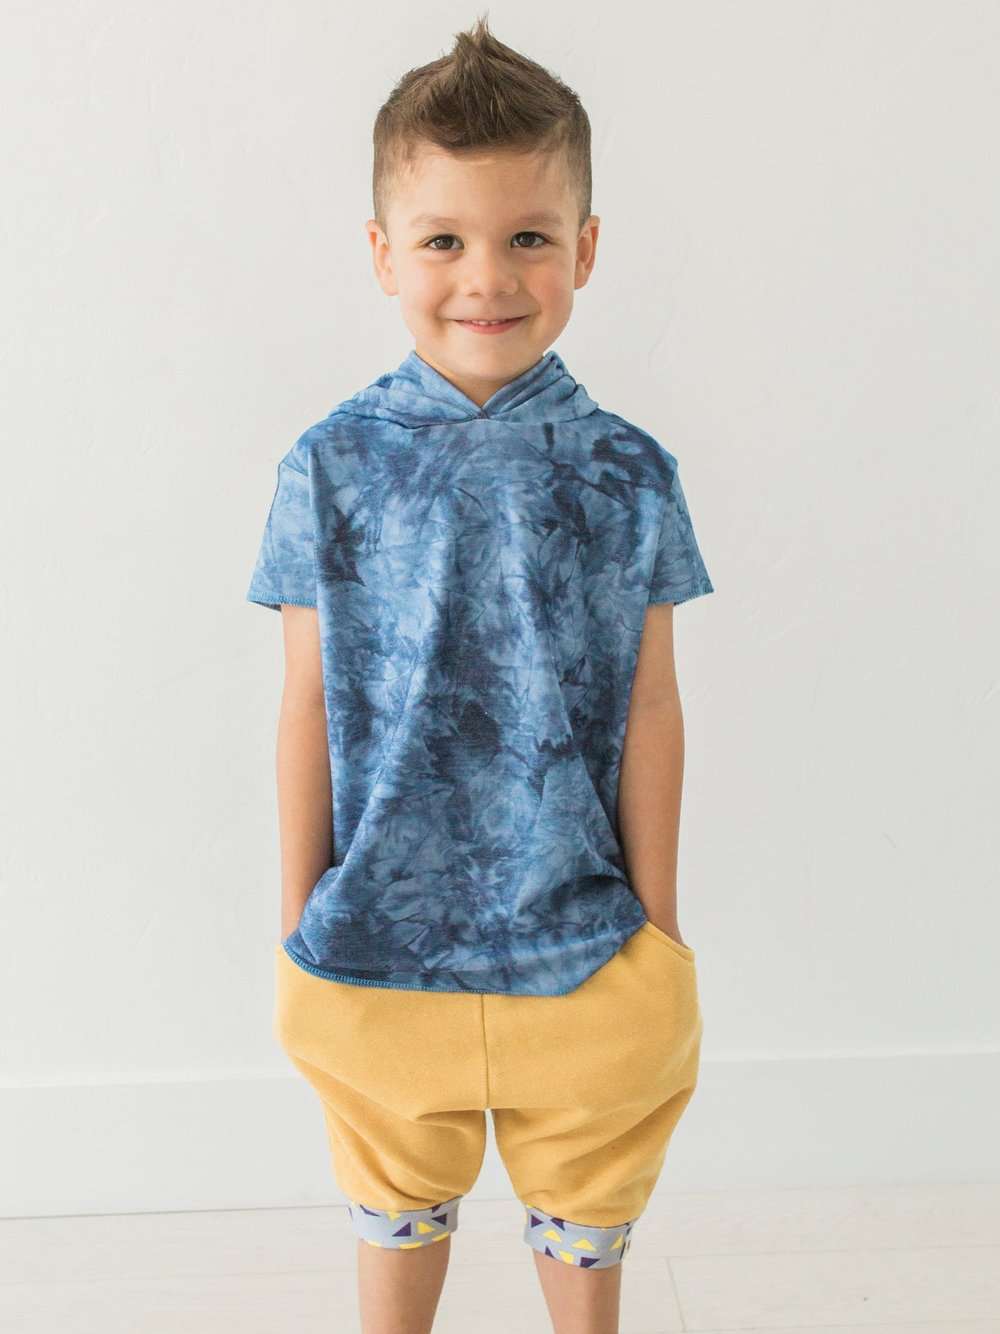 PARADISE KIDS CLOTHING (2)-0579.jpg